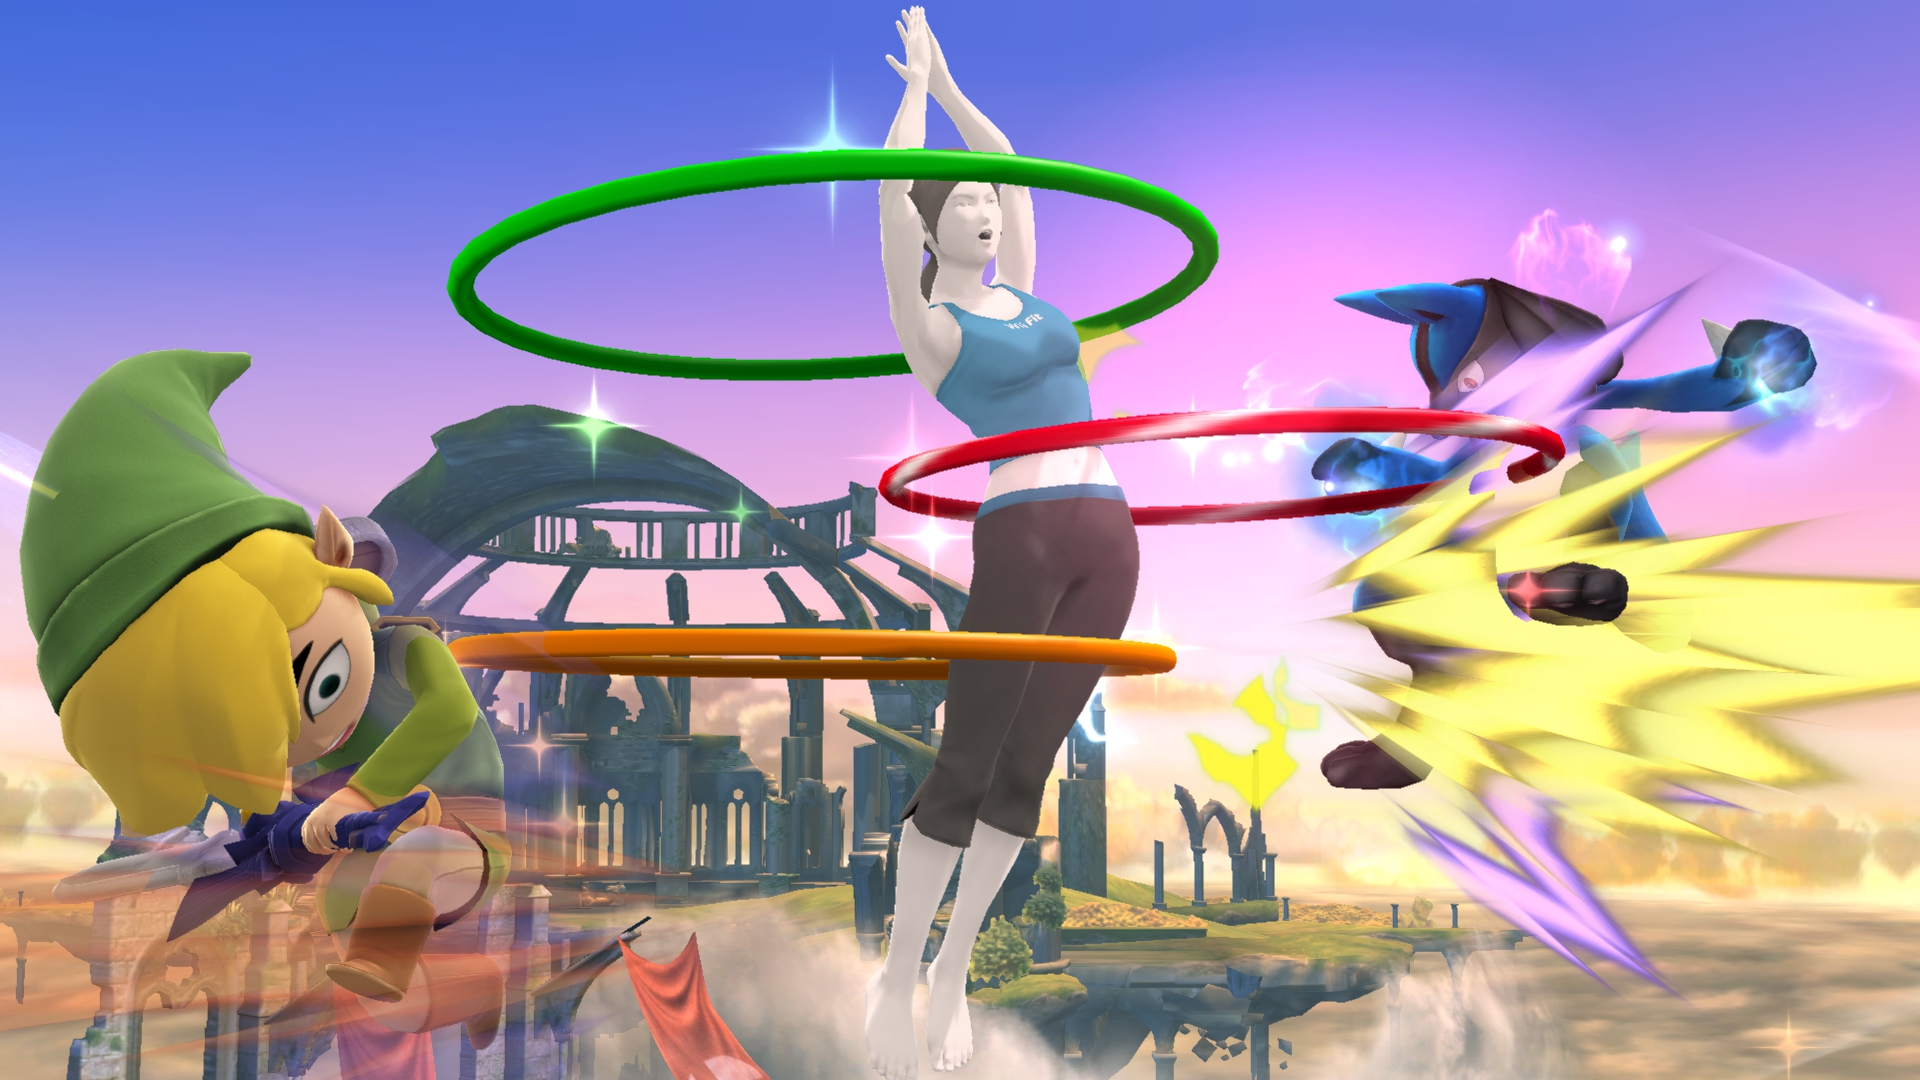 Not the 3DS version, but do appreciate the RESOLUTION on those hula hoops. You won't find hula hoops like that on any other console. Those are proprietary hoops. First party hoops.